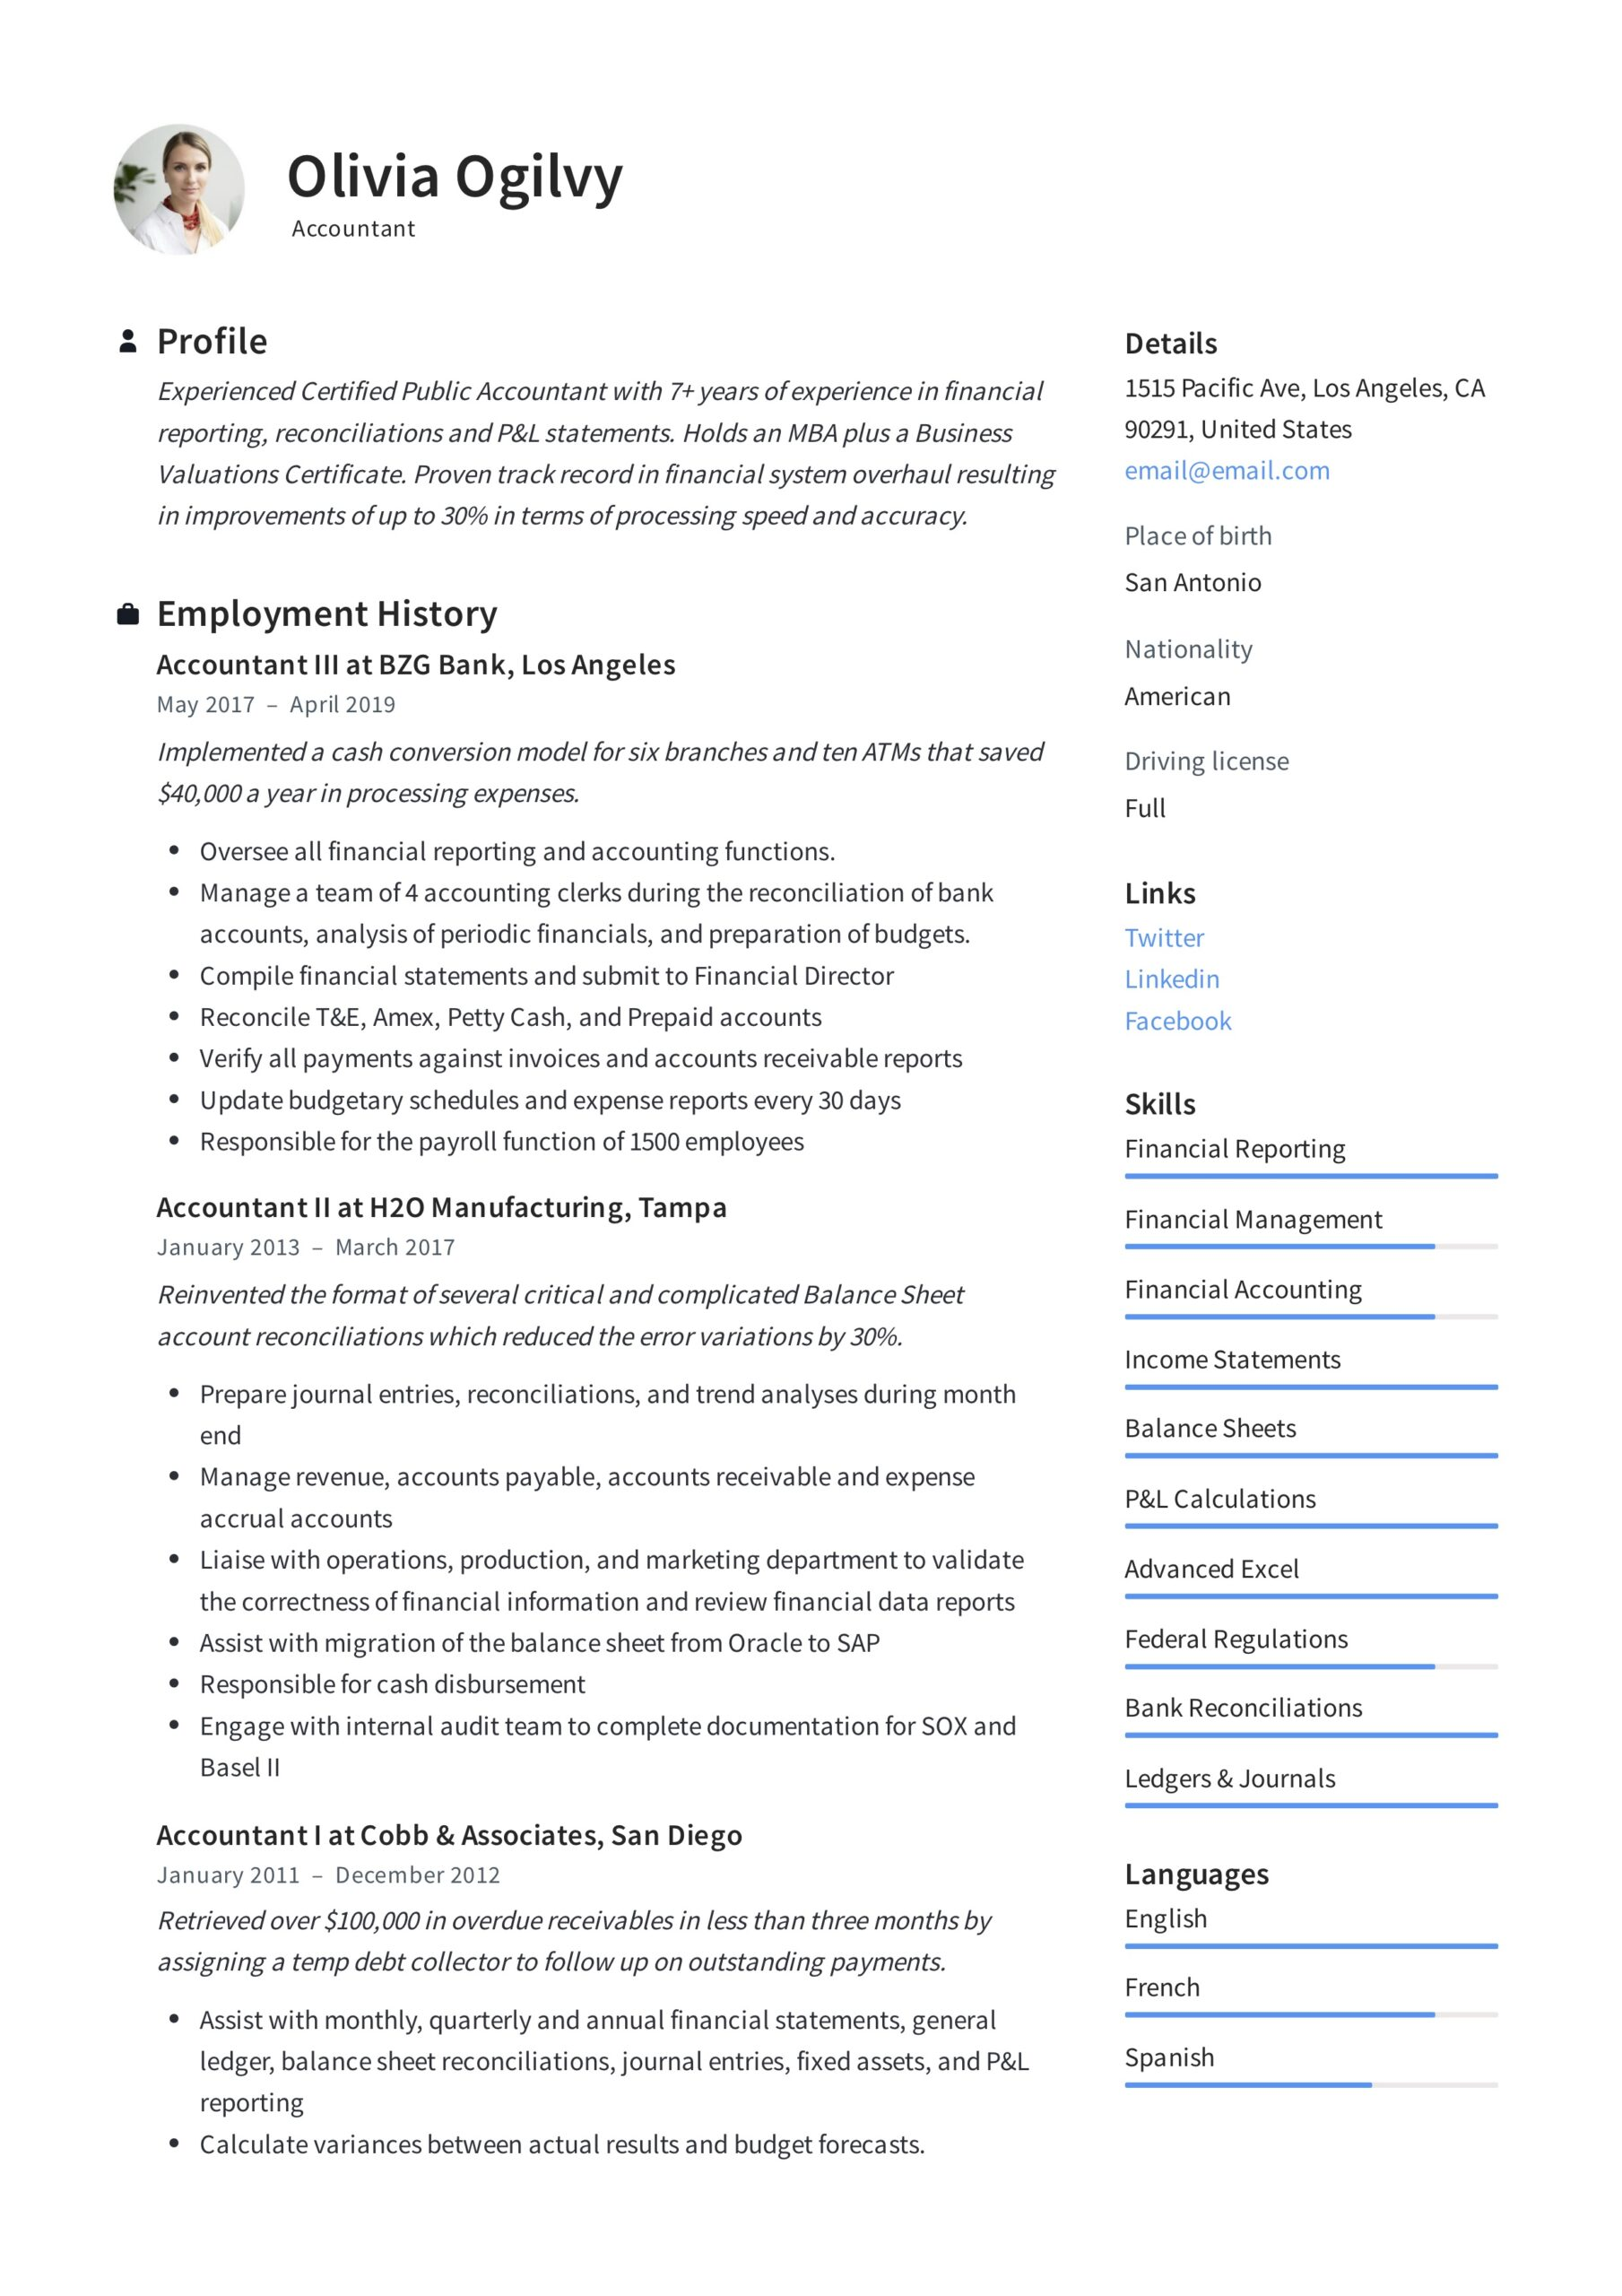 accountant resume writing guide templates pdf cost summary olivia ogilvy format for air Resume Cost Accountant Resume Summary